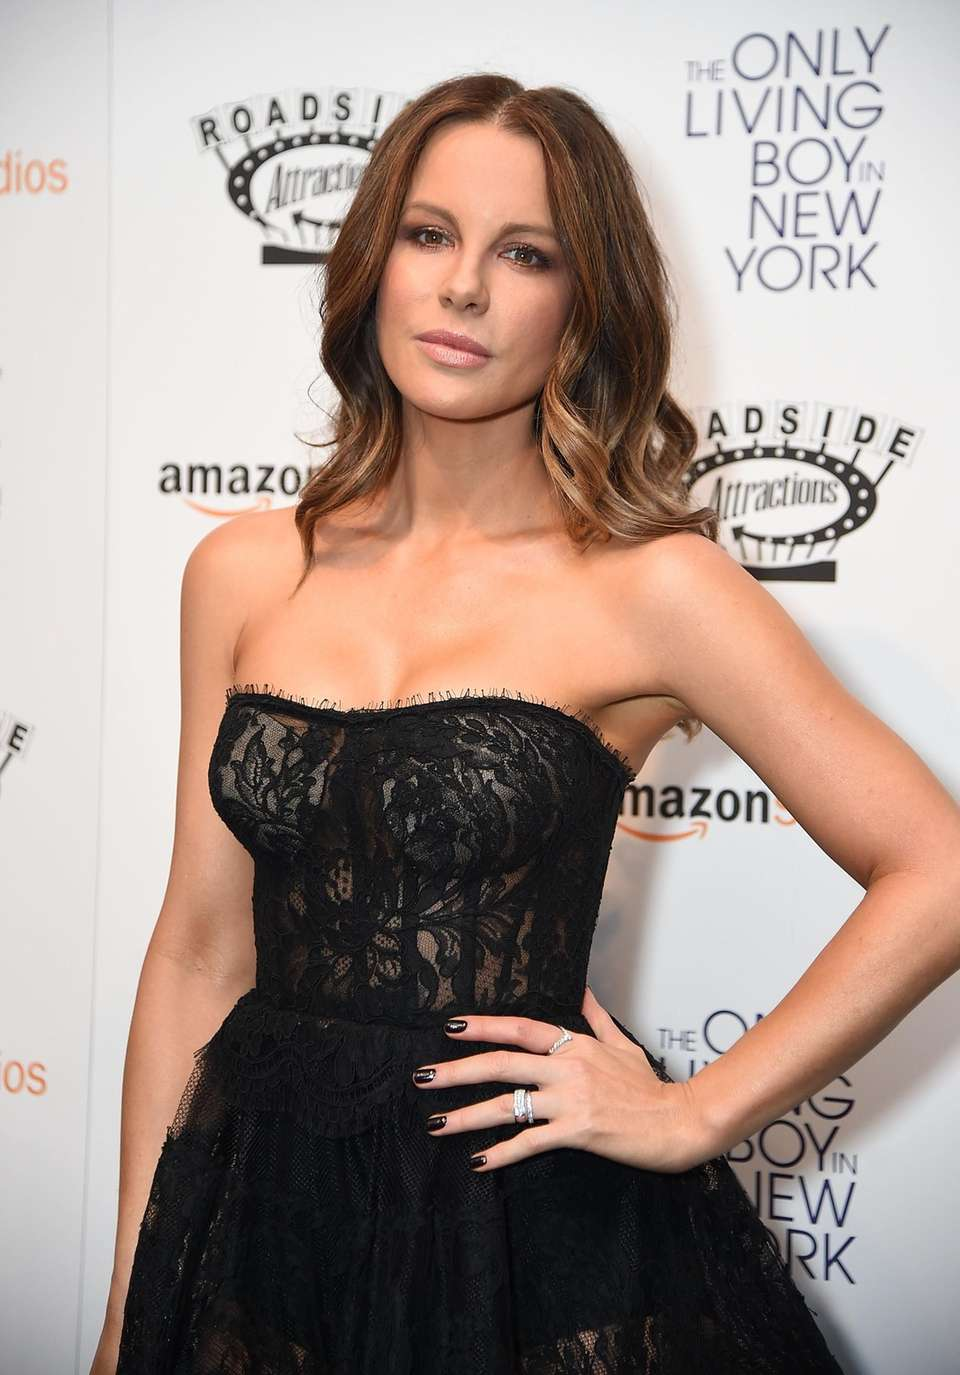 Kate Beckinsale attends the New York premiere of